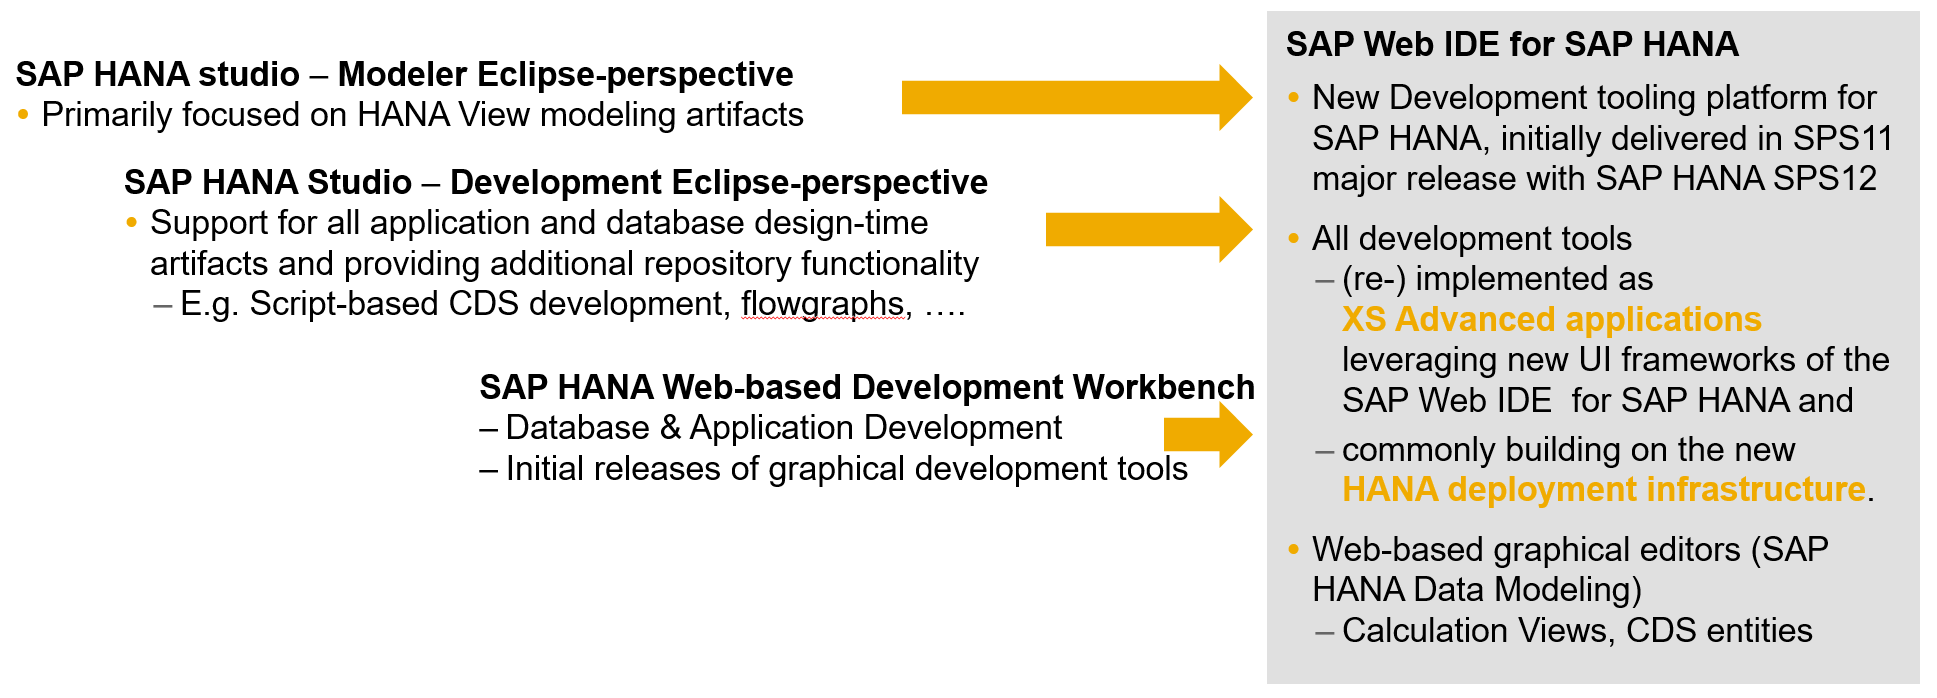 Overview of Migration of SAP HANA graphical view models into